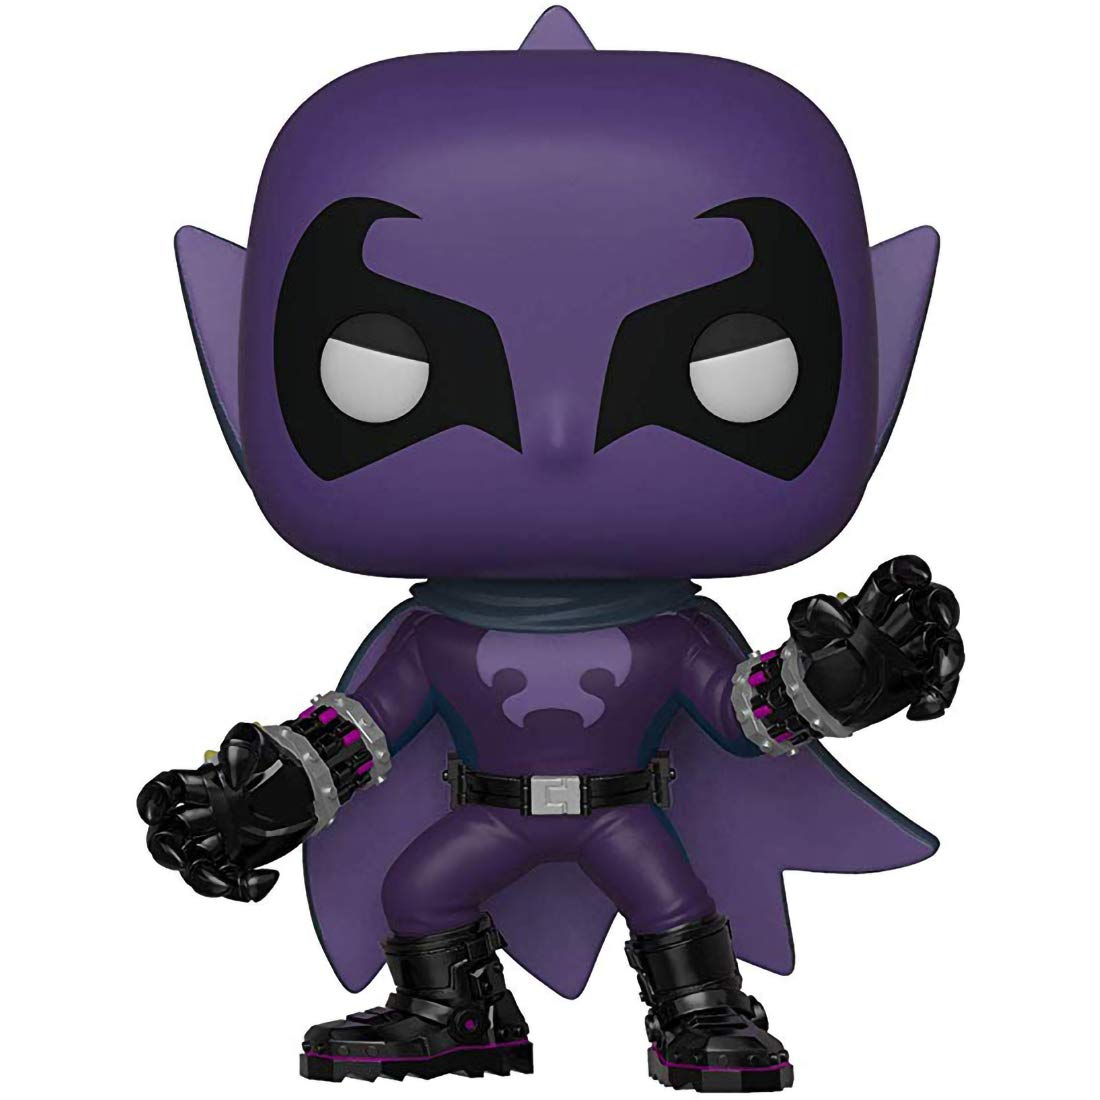 Funko Prowler: Spider-Man Marvel Vinyl Figure /& 1 PET Plastic Graphical Protector Bundle Into The Spider-Verse x POP #407 // 33980 - B BCC94Y806